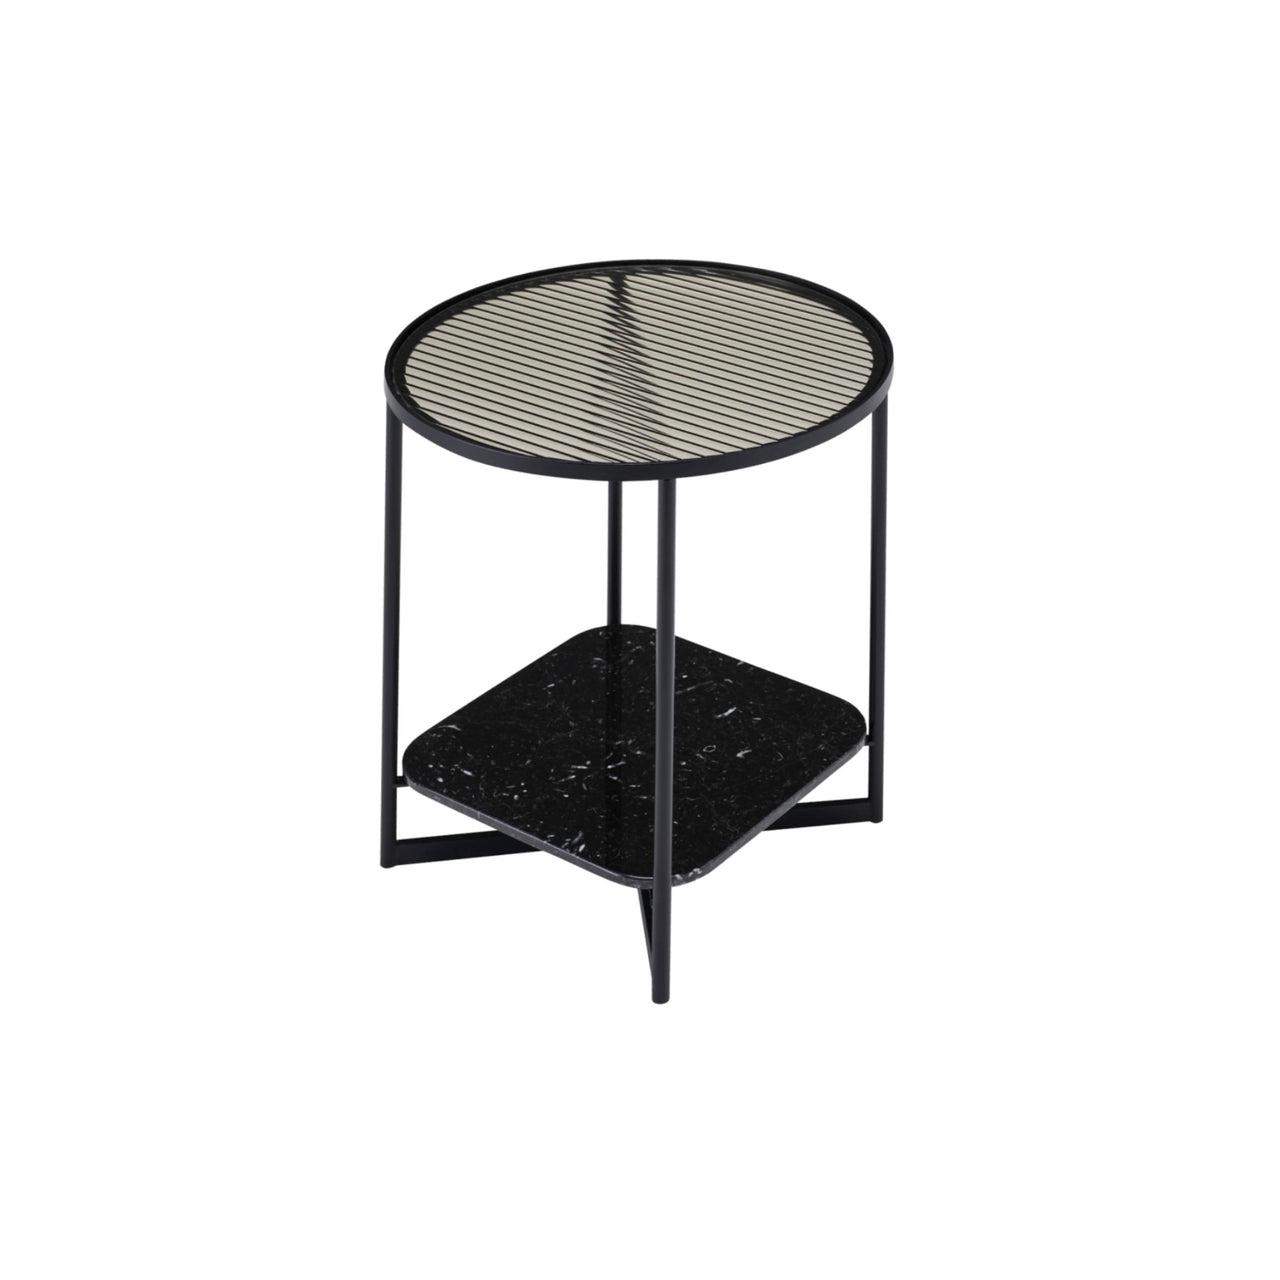 Mohana Side Table Small: Black + Fluted Glass + Black Marble